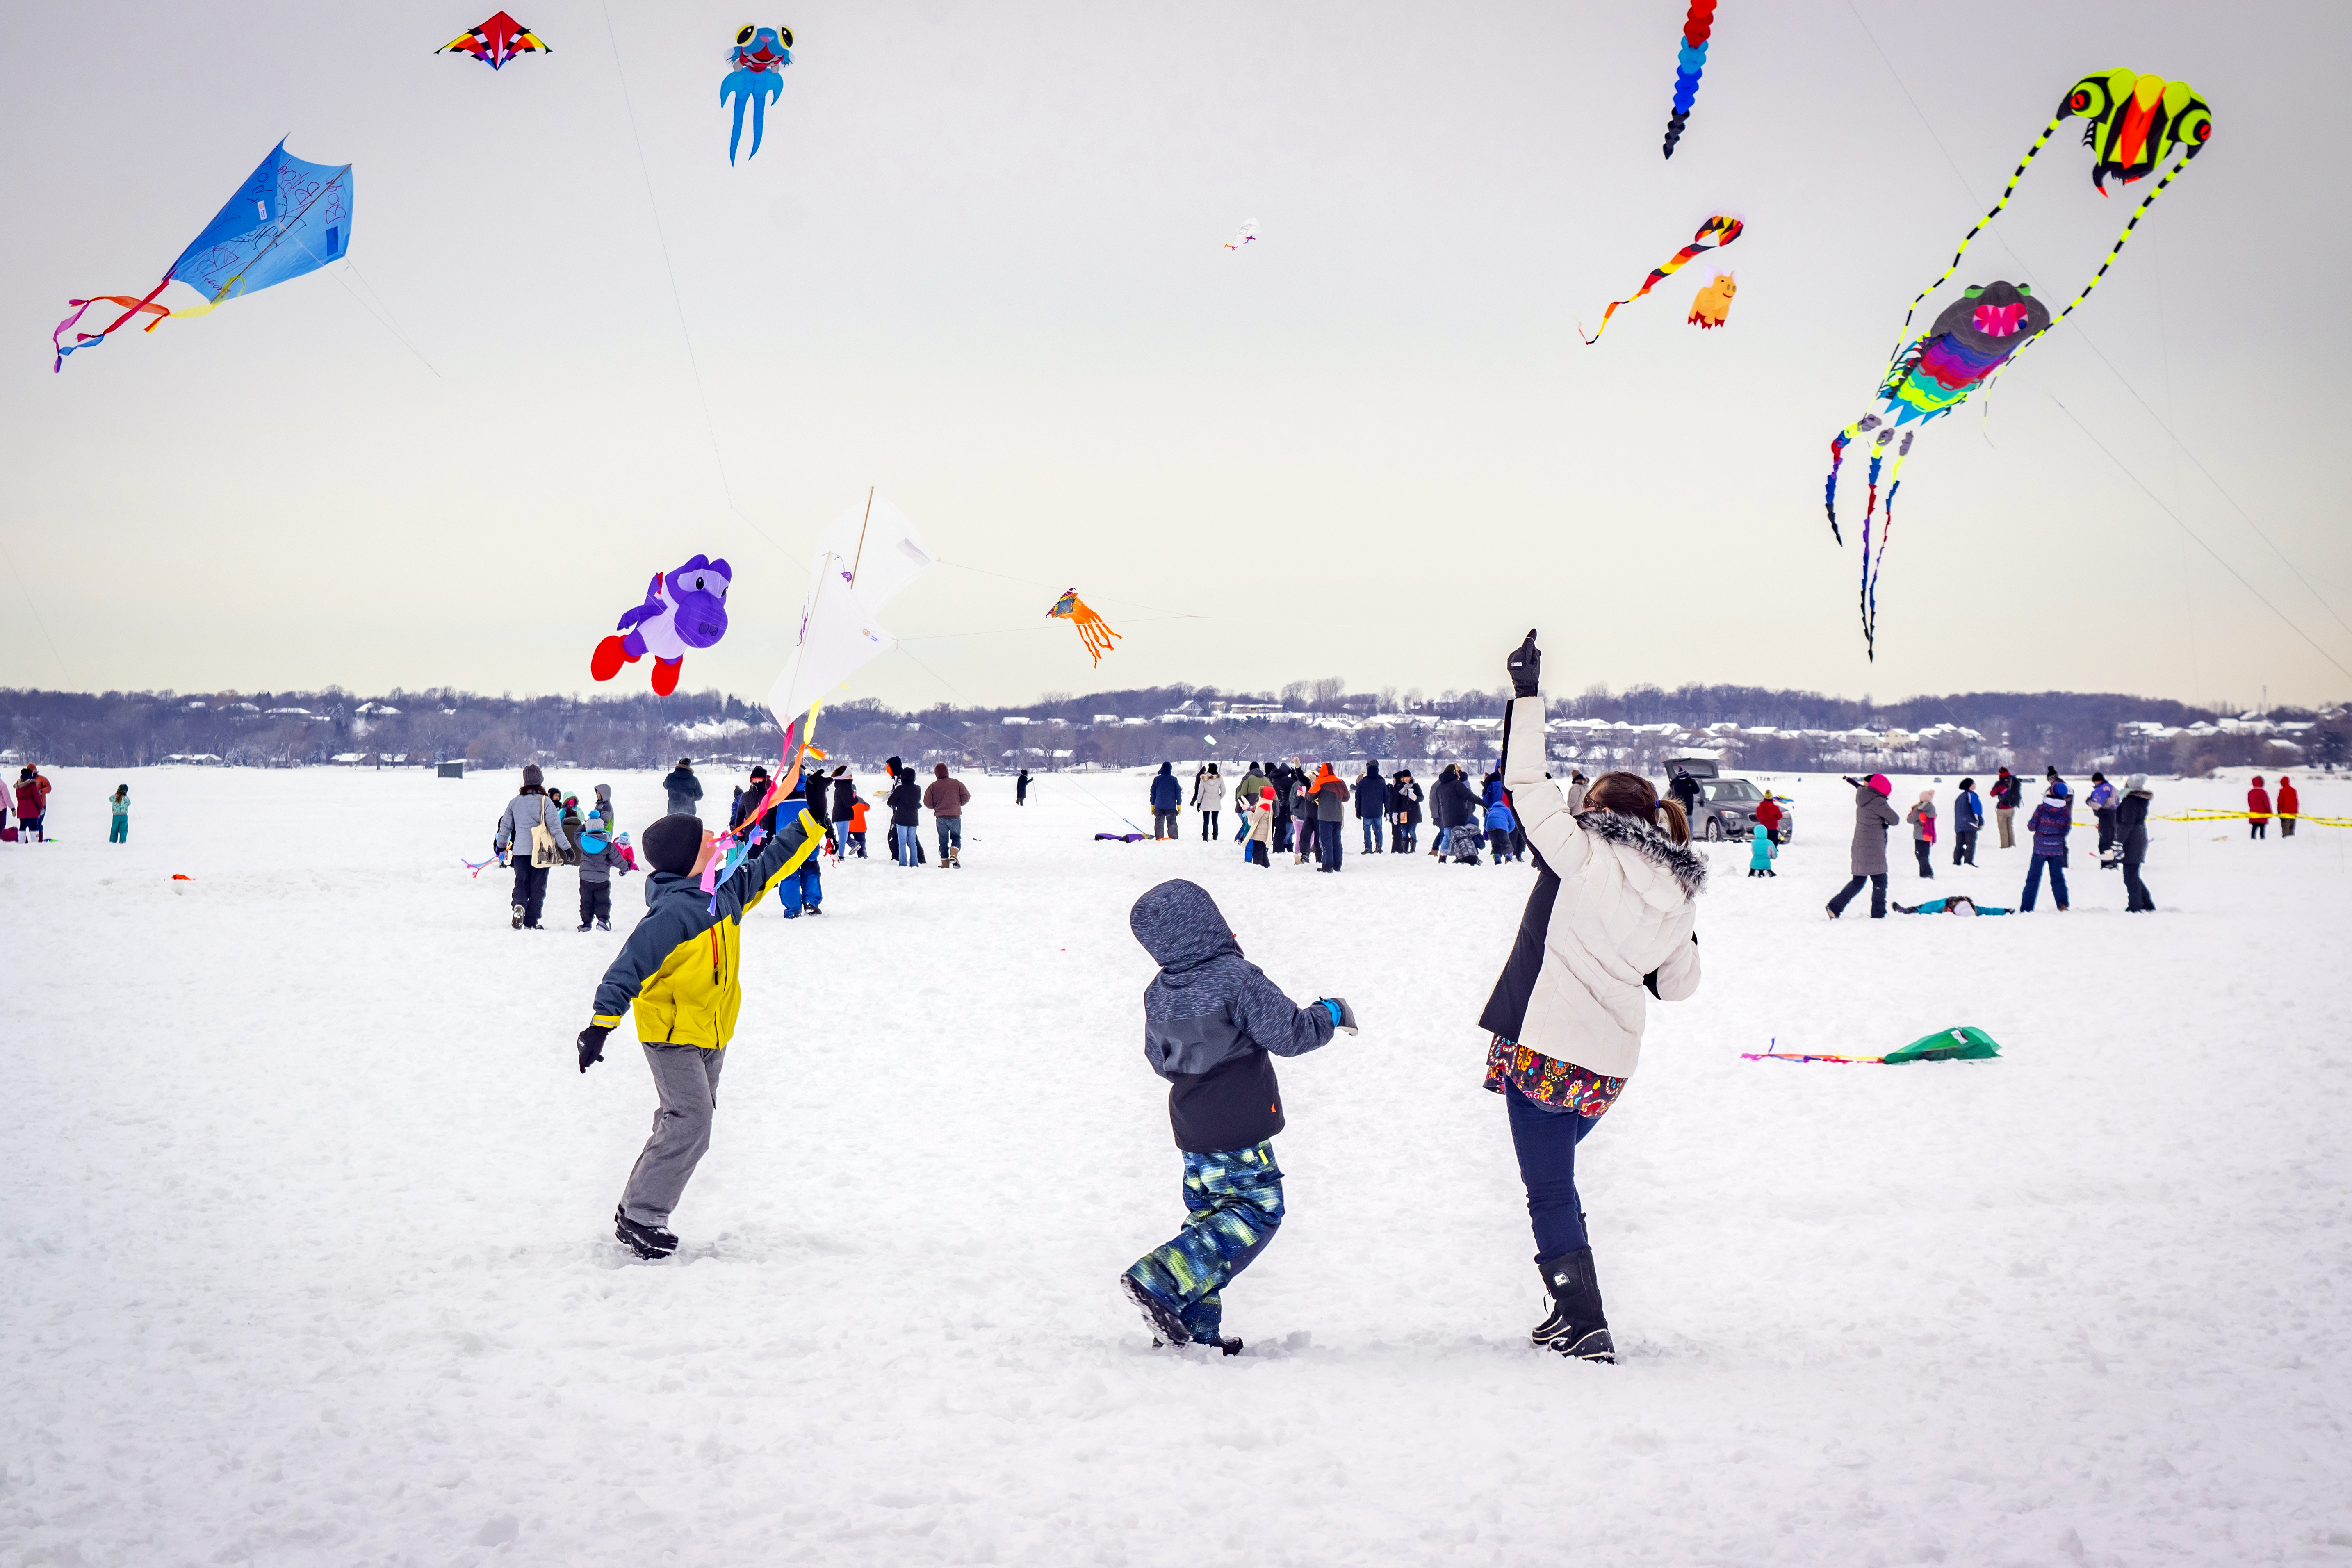 Kites on Ice Festival - Build-a-Kite workshop - fly your own kite!